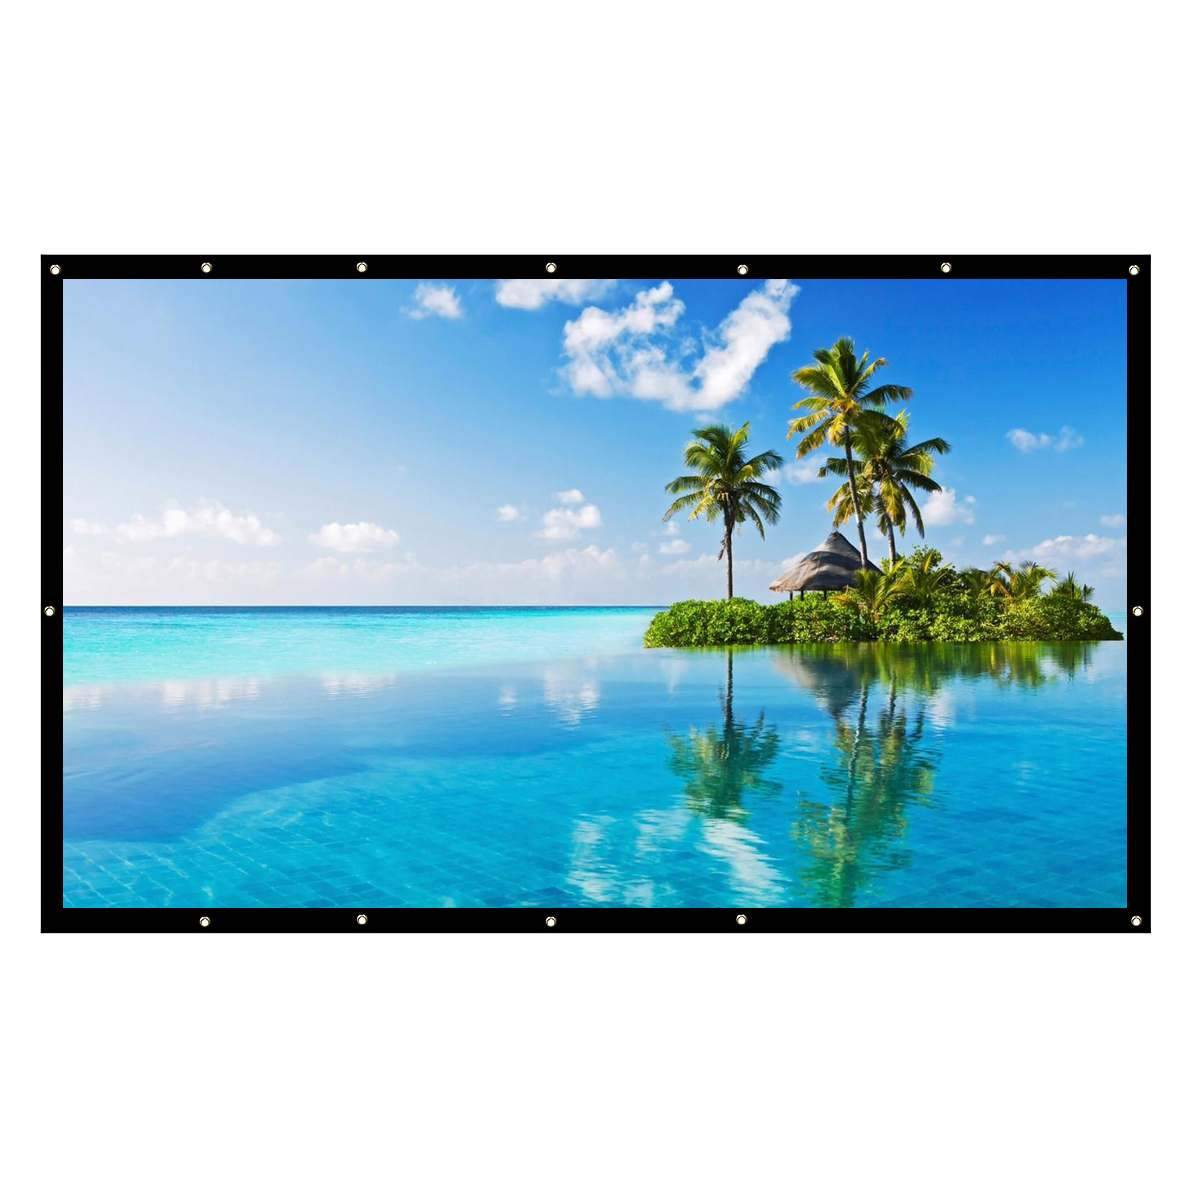 Foldable HD 200 inche Projector Screen 16:9 4:3 Wall Mounted For  HD Projector Home Theater Cinema Movies PartyFoldable HD 200 inche Projector Screen 16:9 4:3 Wall Mounted For  HD Projector Home Theater Cinema Movies Party